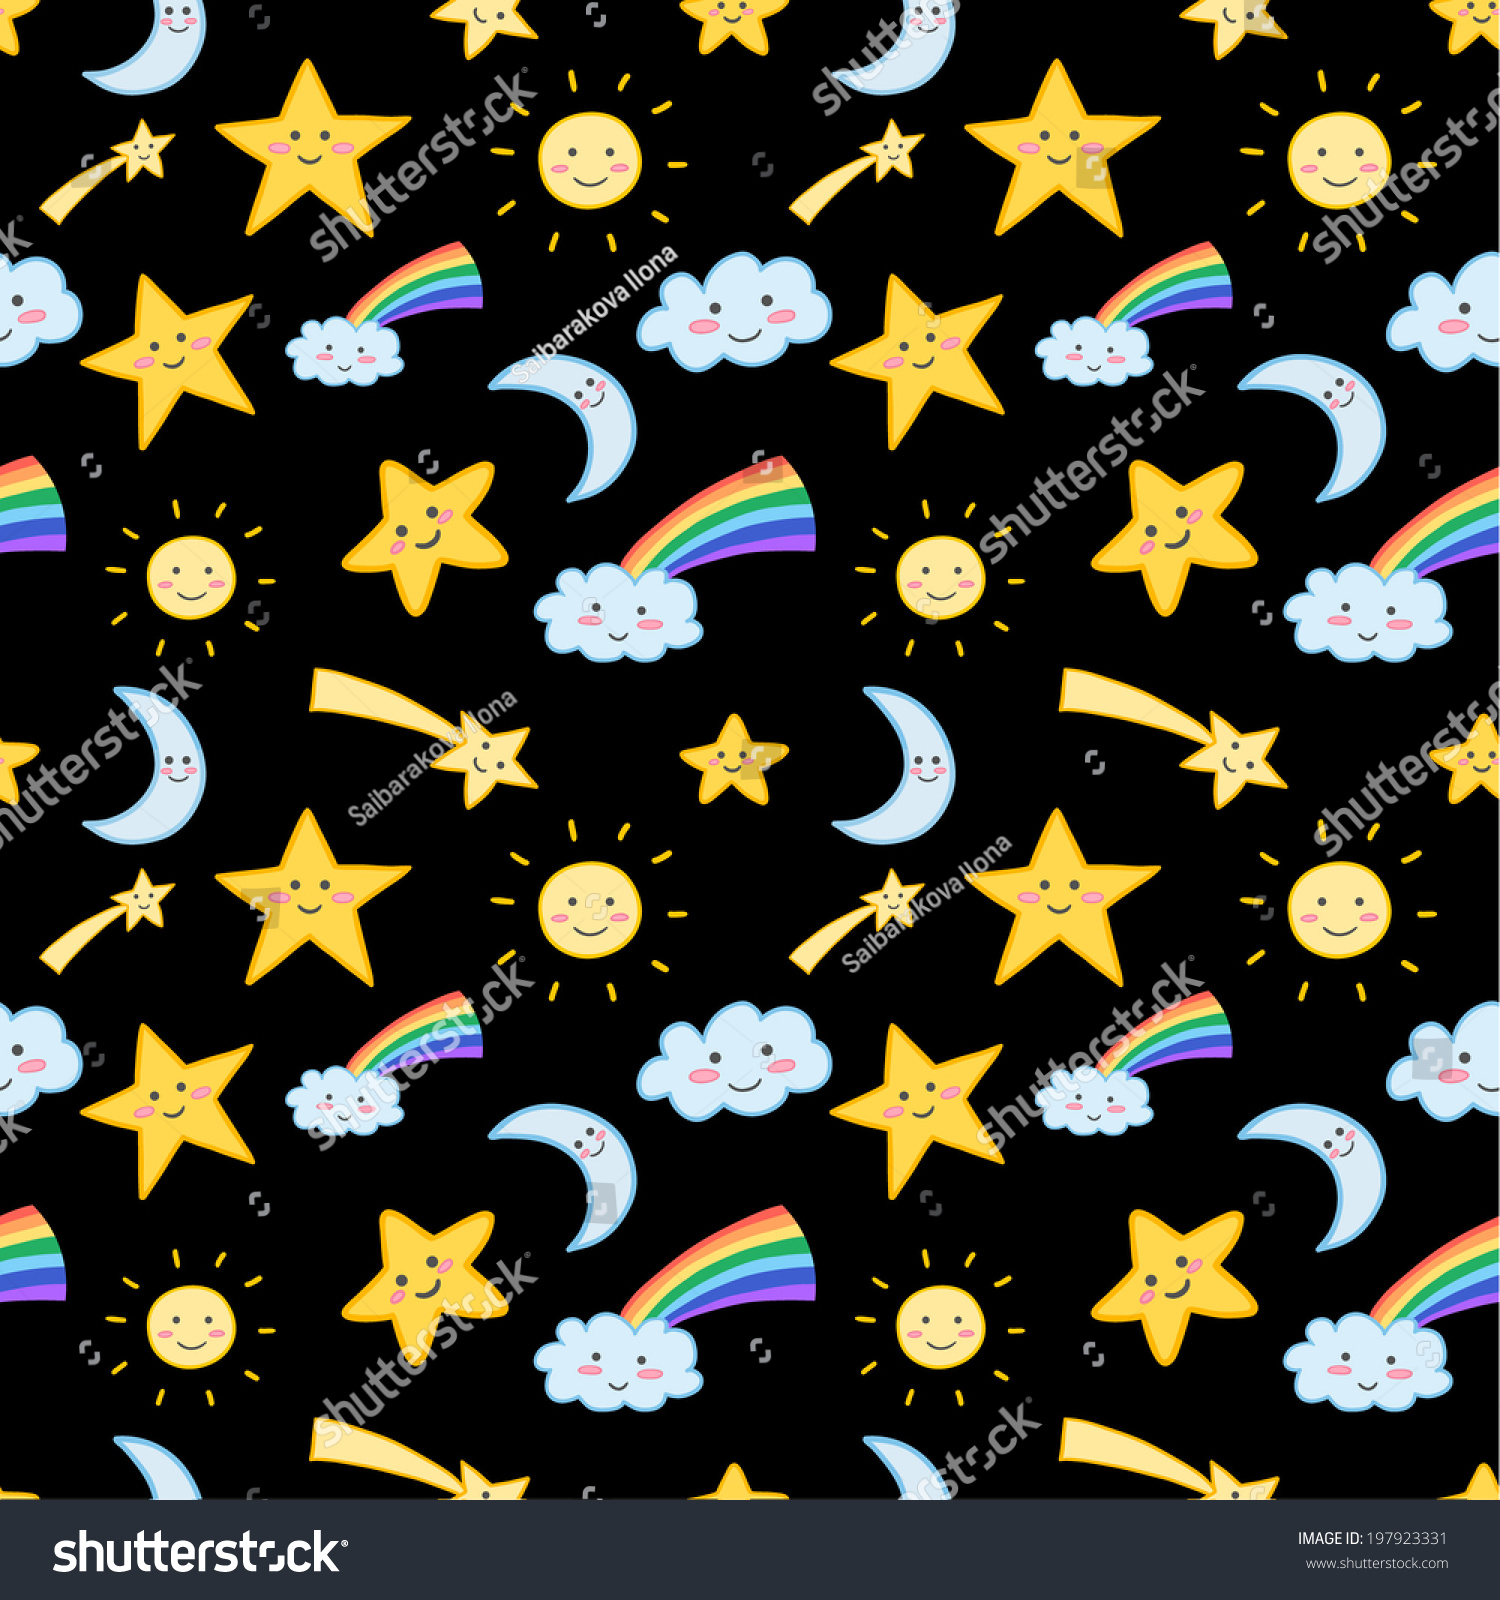 Cute Seamless Pattern With Clouds Stars Suns And Moons